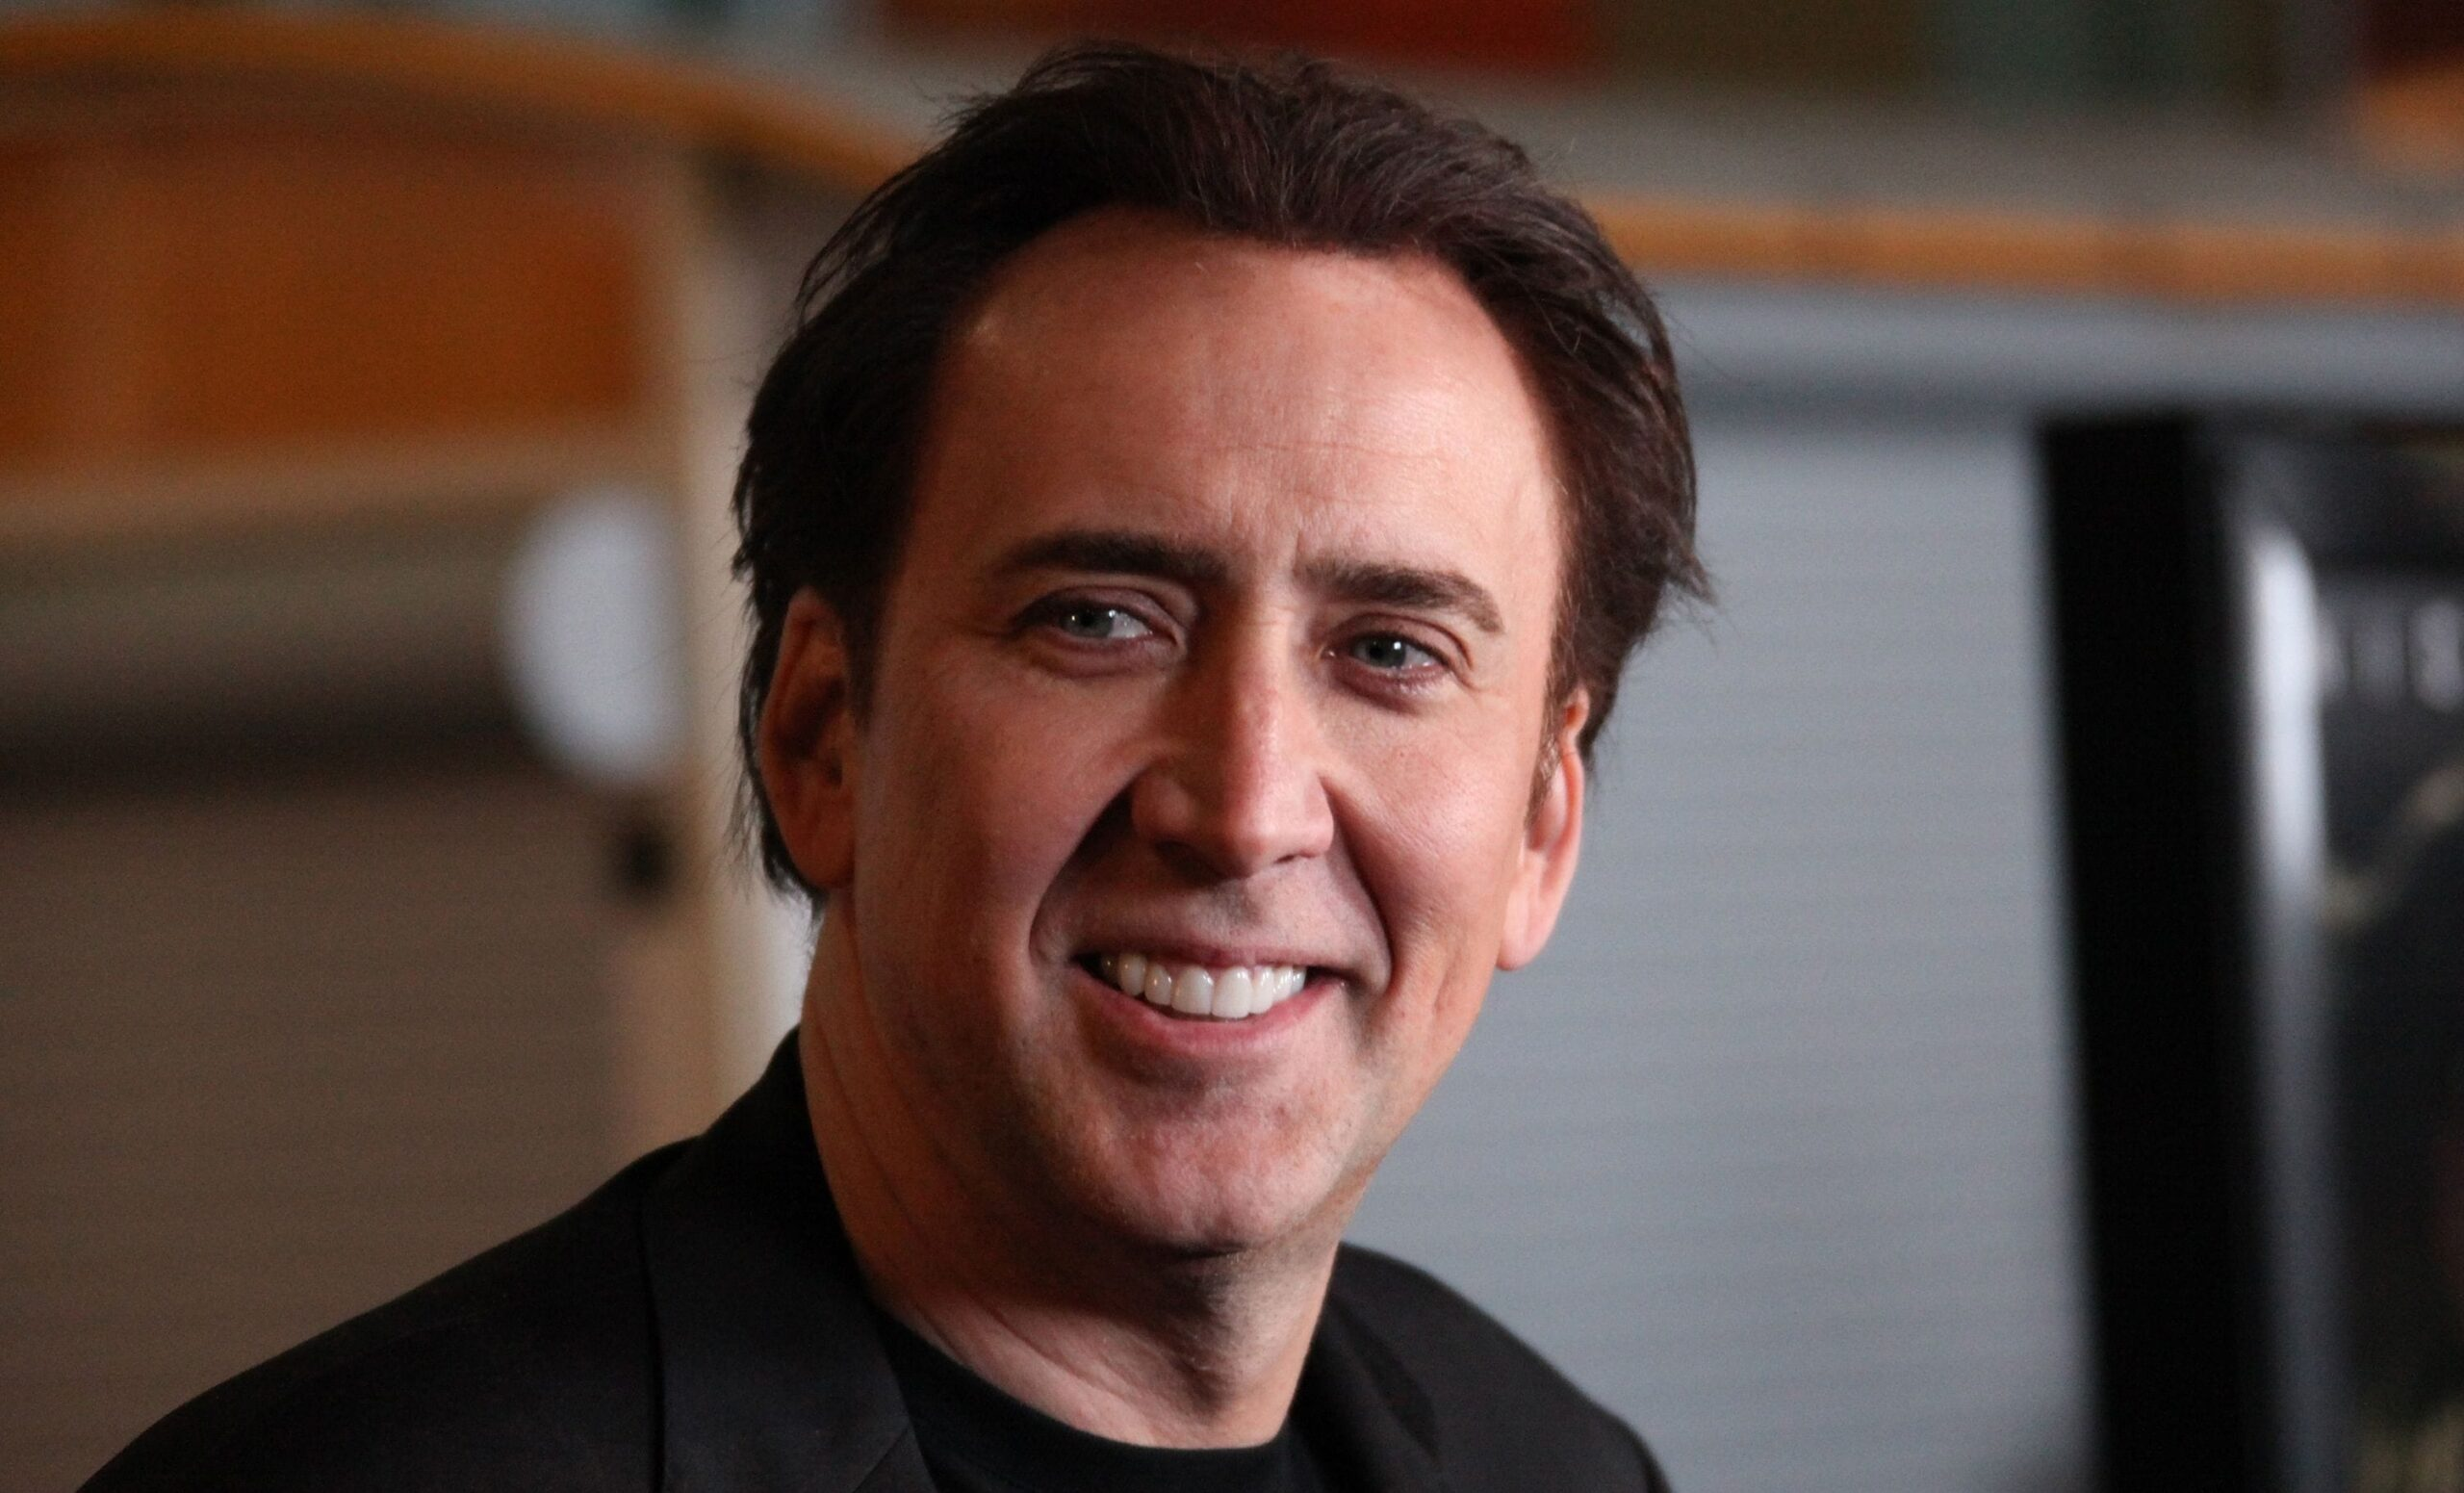 Nicolas Cage Phone number, Email Id, Fanmail, Instagram, Tiktok, and Contact Details